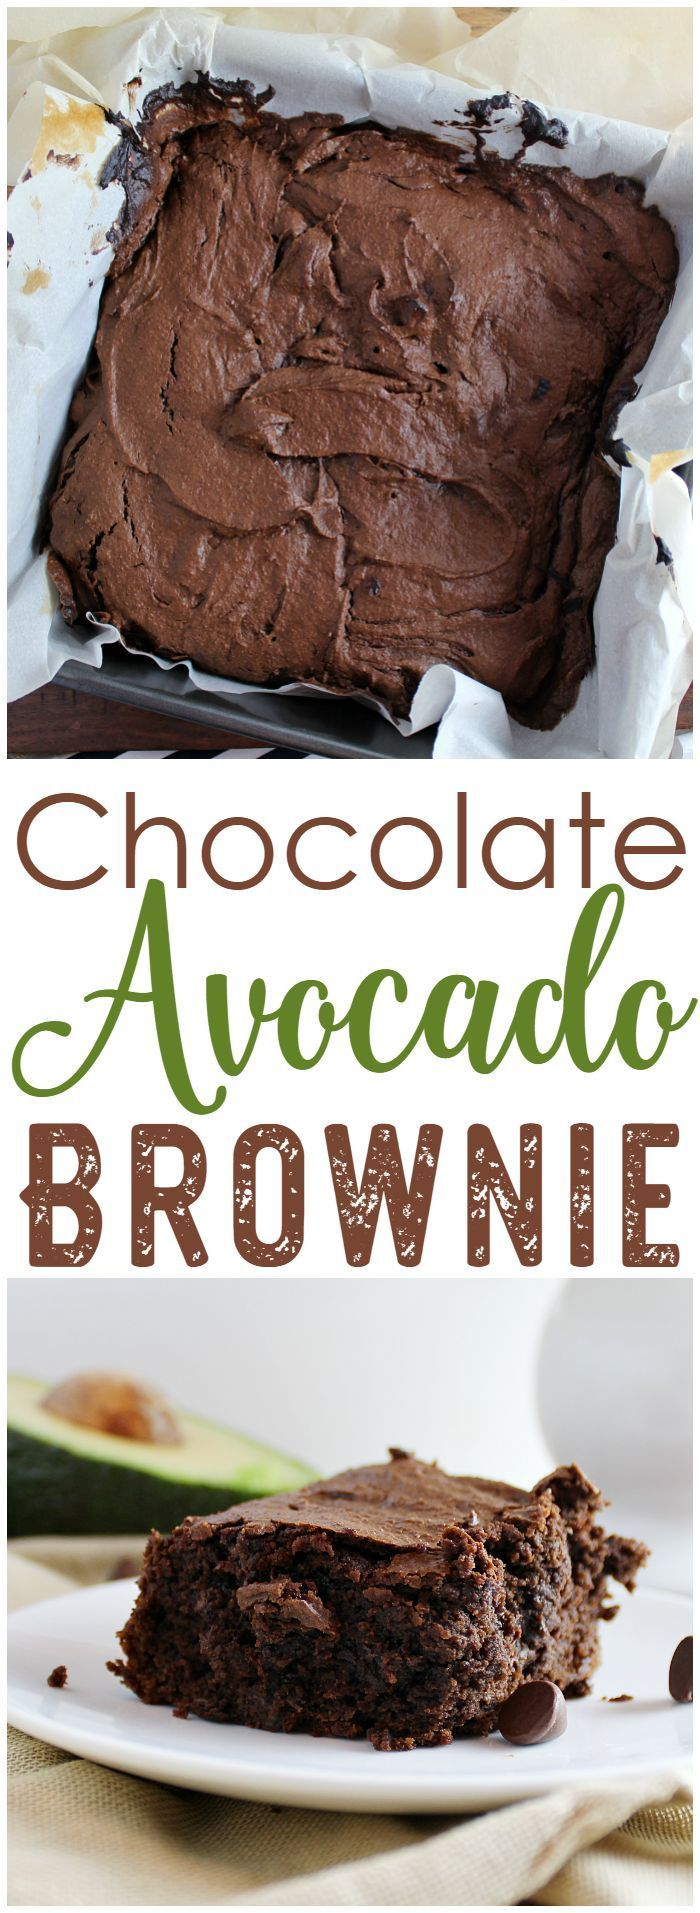 A rich, chocolate, better-for-you brownie! Make these Chocolate Avocado Brownies to get you through when you're craving something delicious!